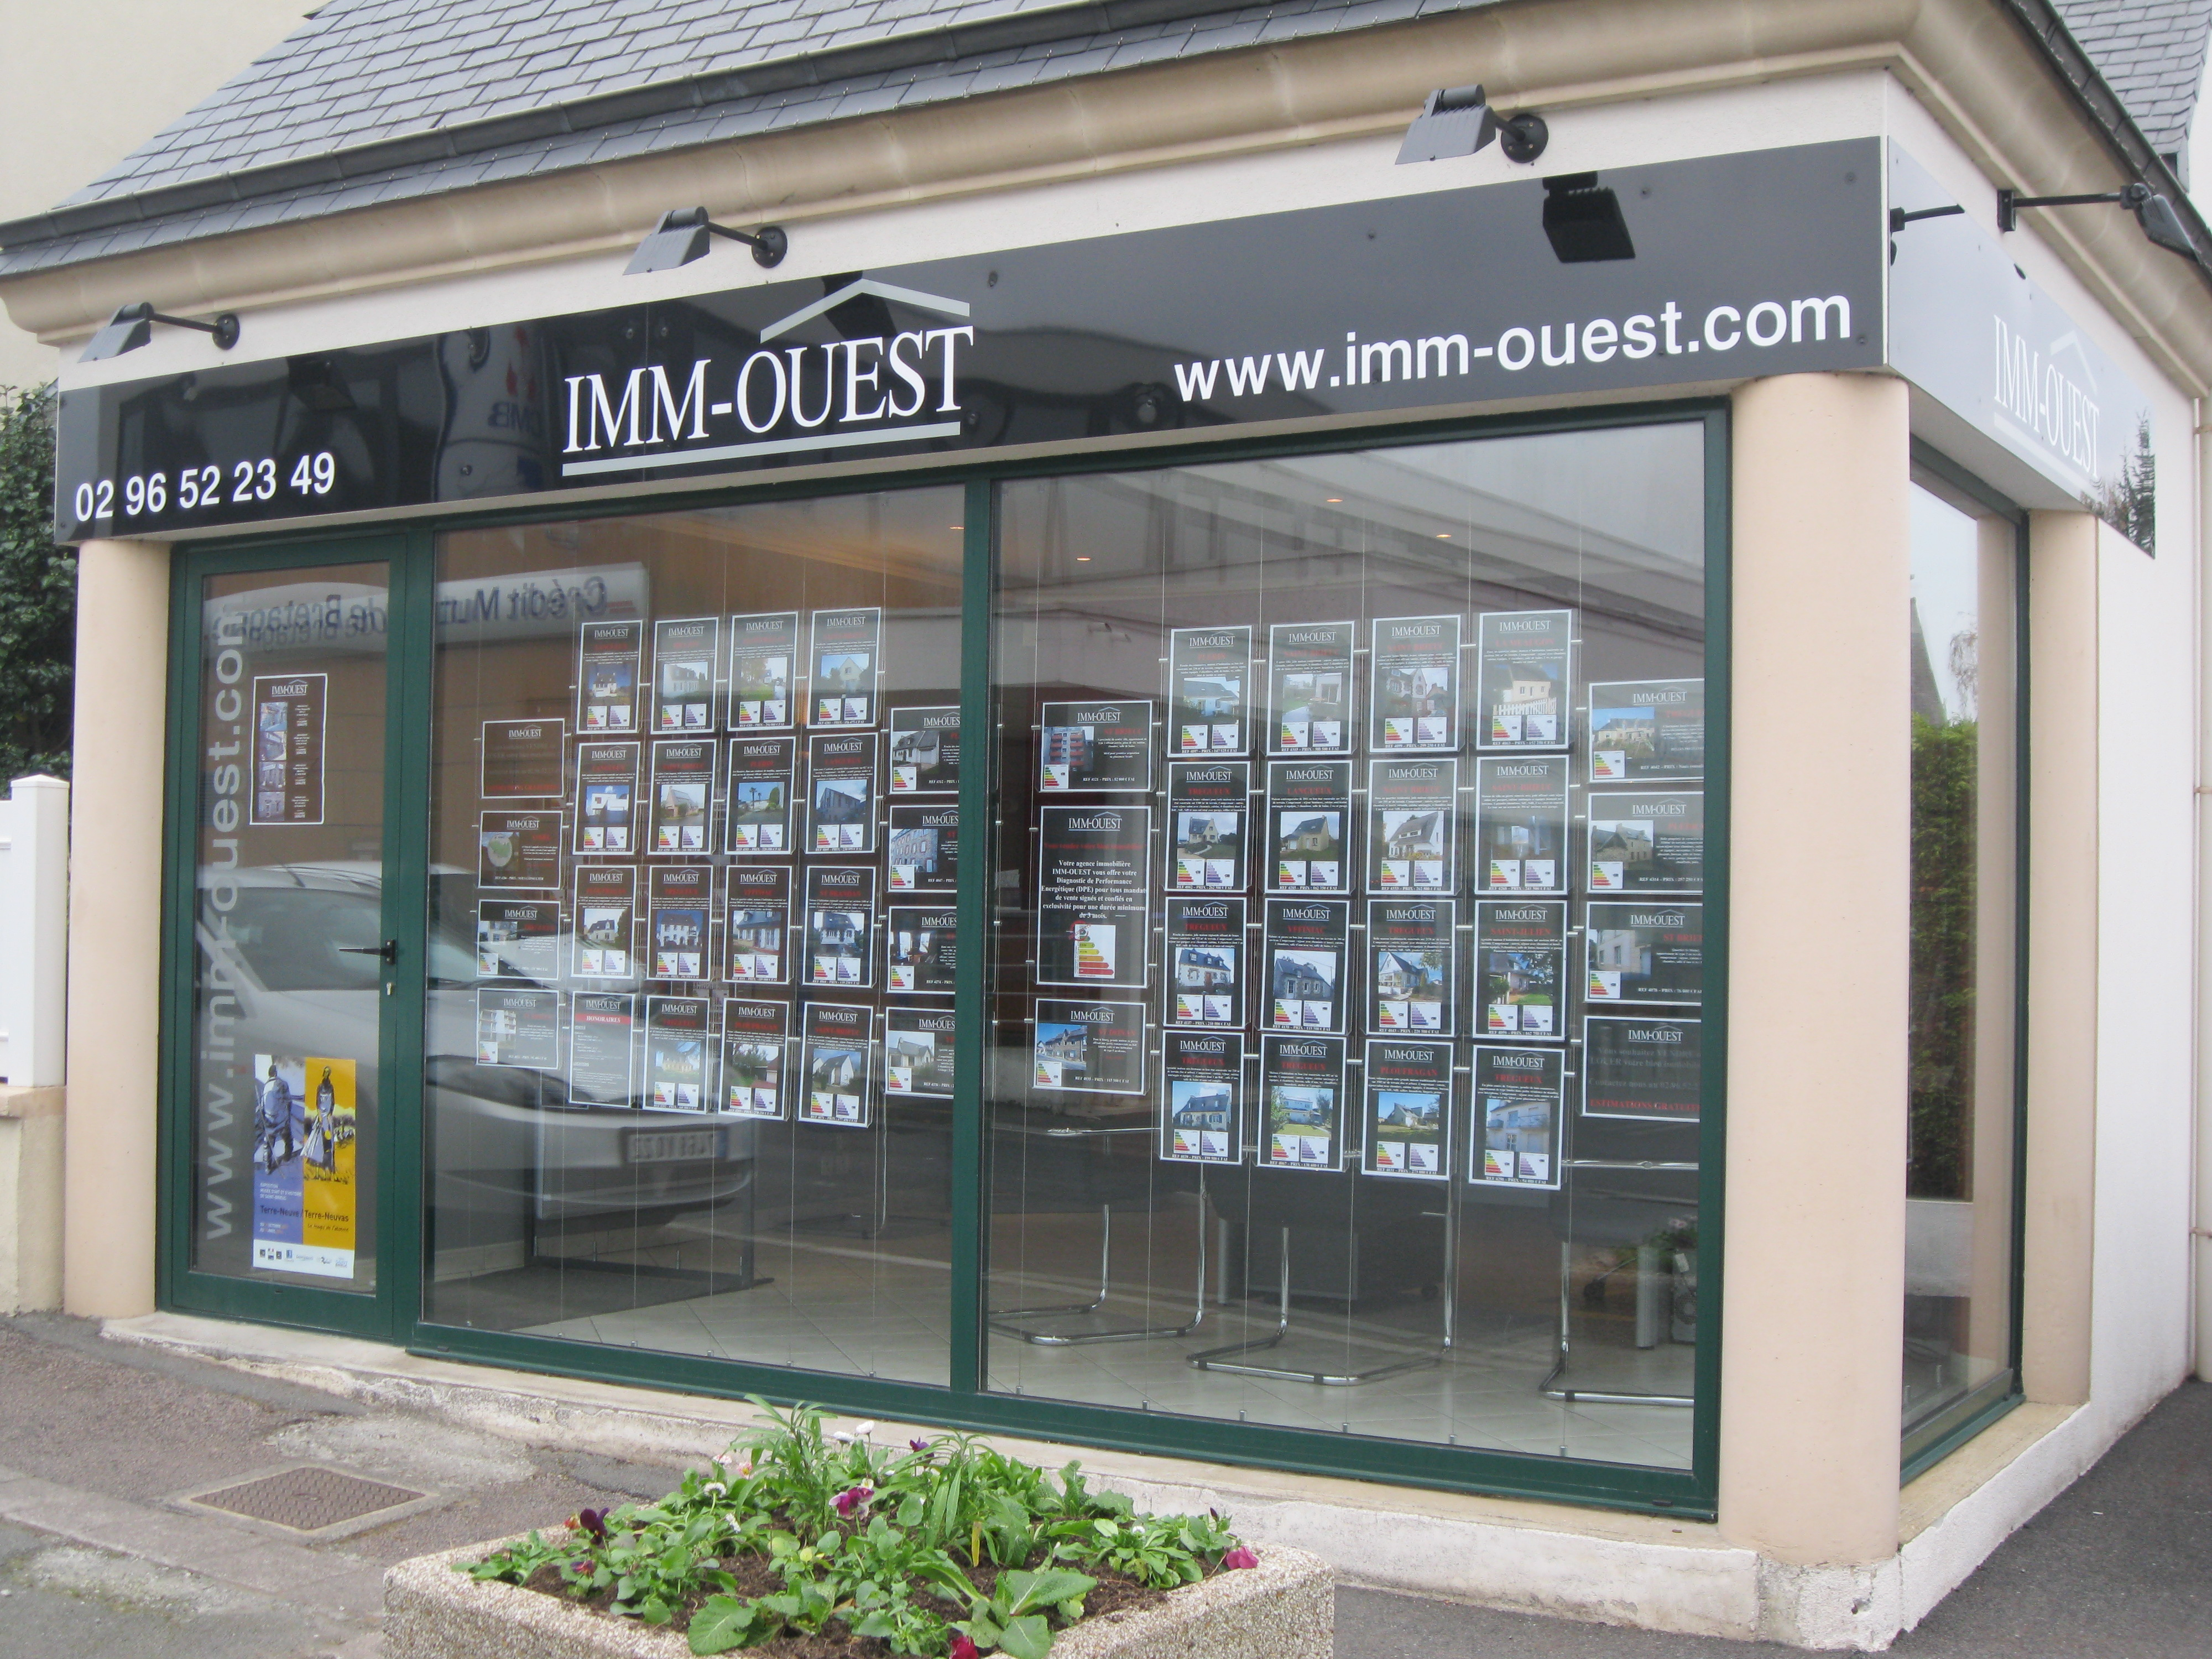 IMM-OUEST